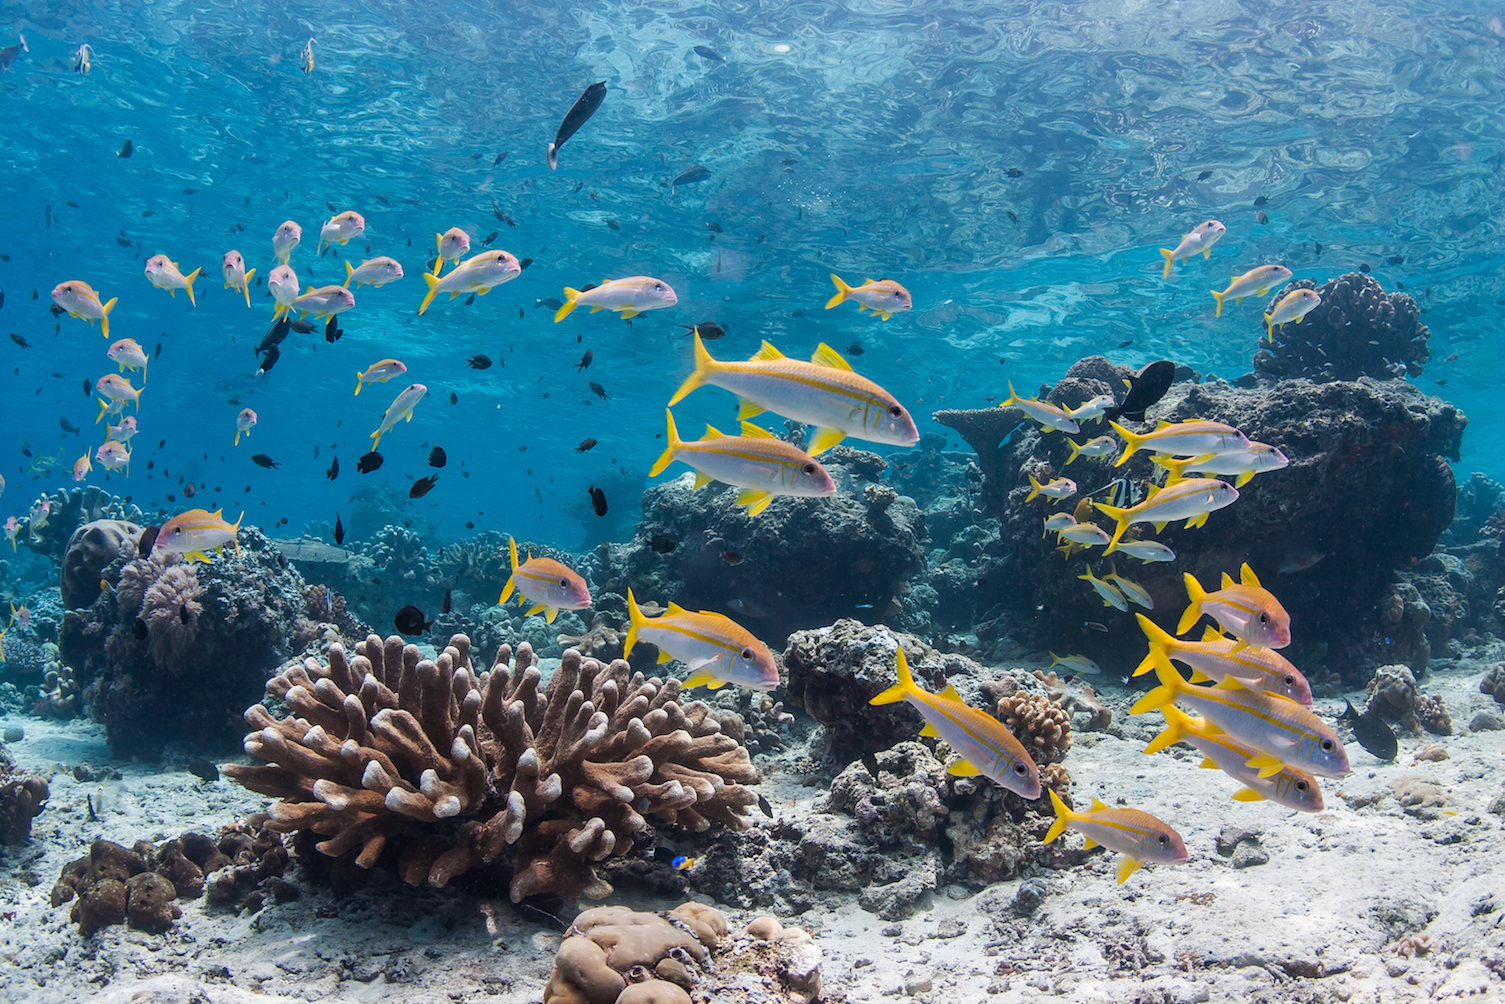 A study found that reef fish eat more algae when surrounded by other fish, which may be crucial to saving coral reefs for algae overgrowth.